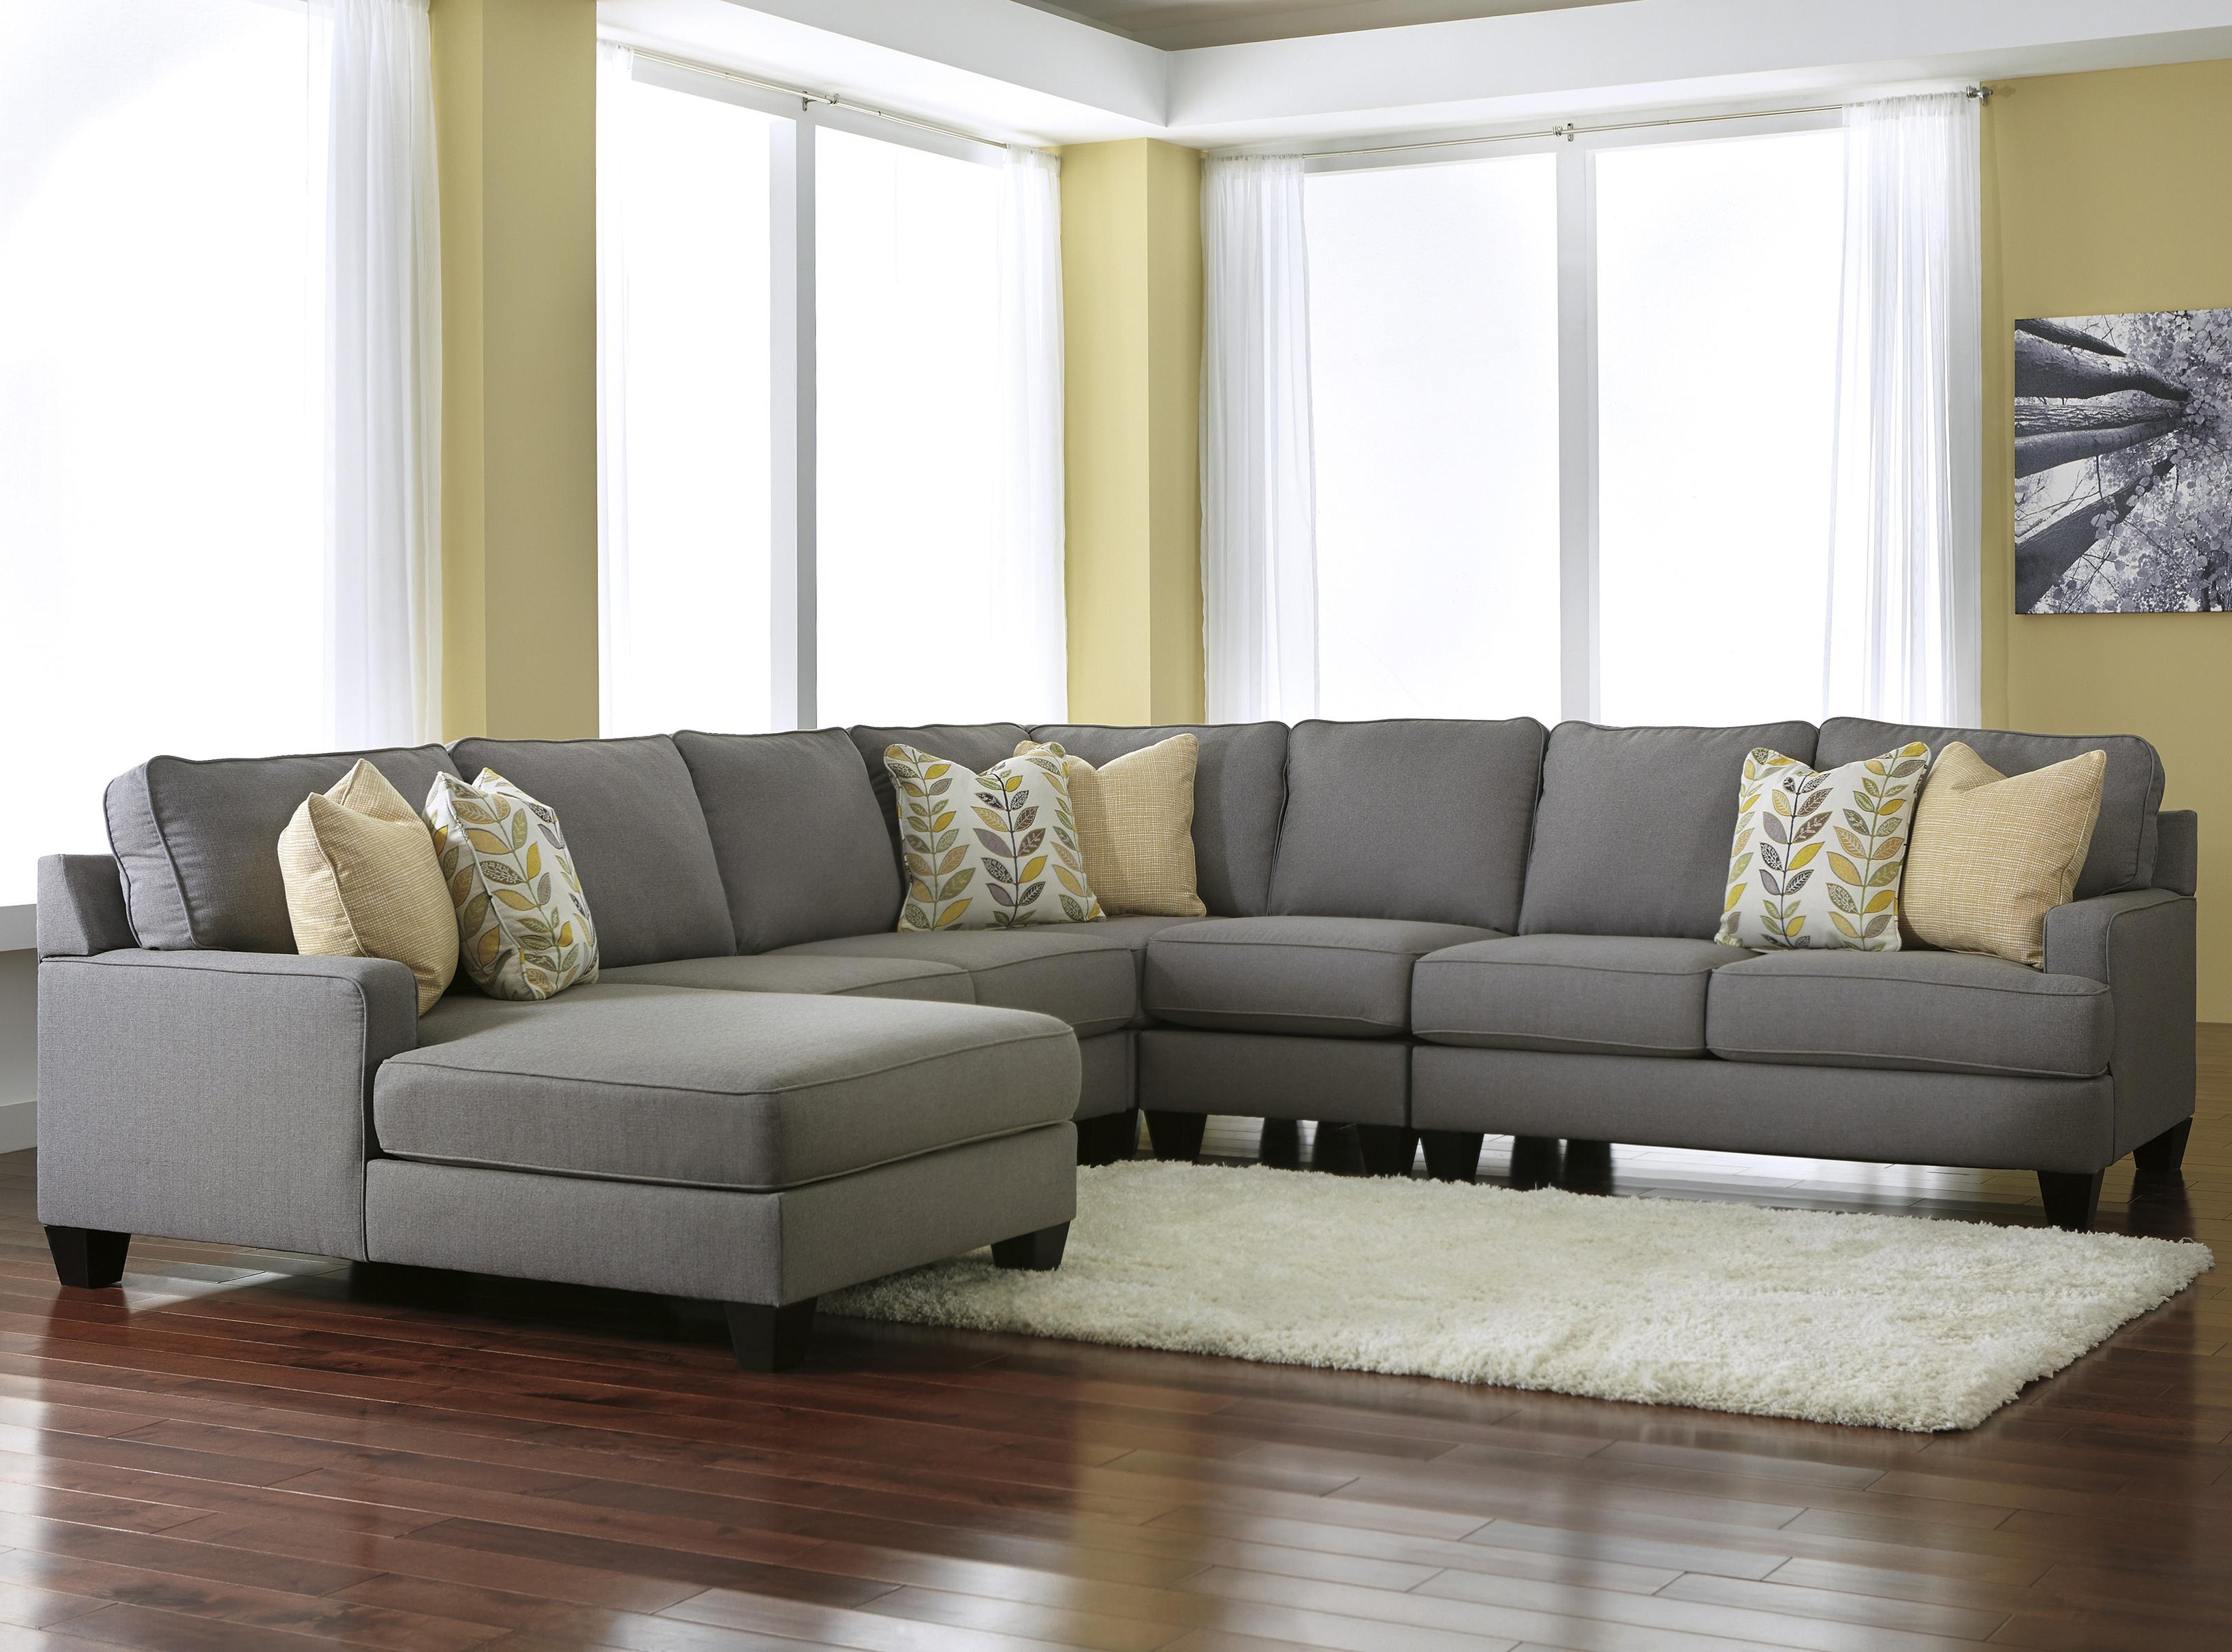 Modern 5 piece sectional sofa with left chaise reversible seat cushions by signature design by Loveseat chaise sectional